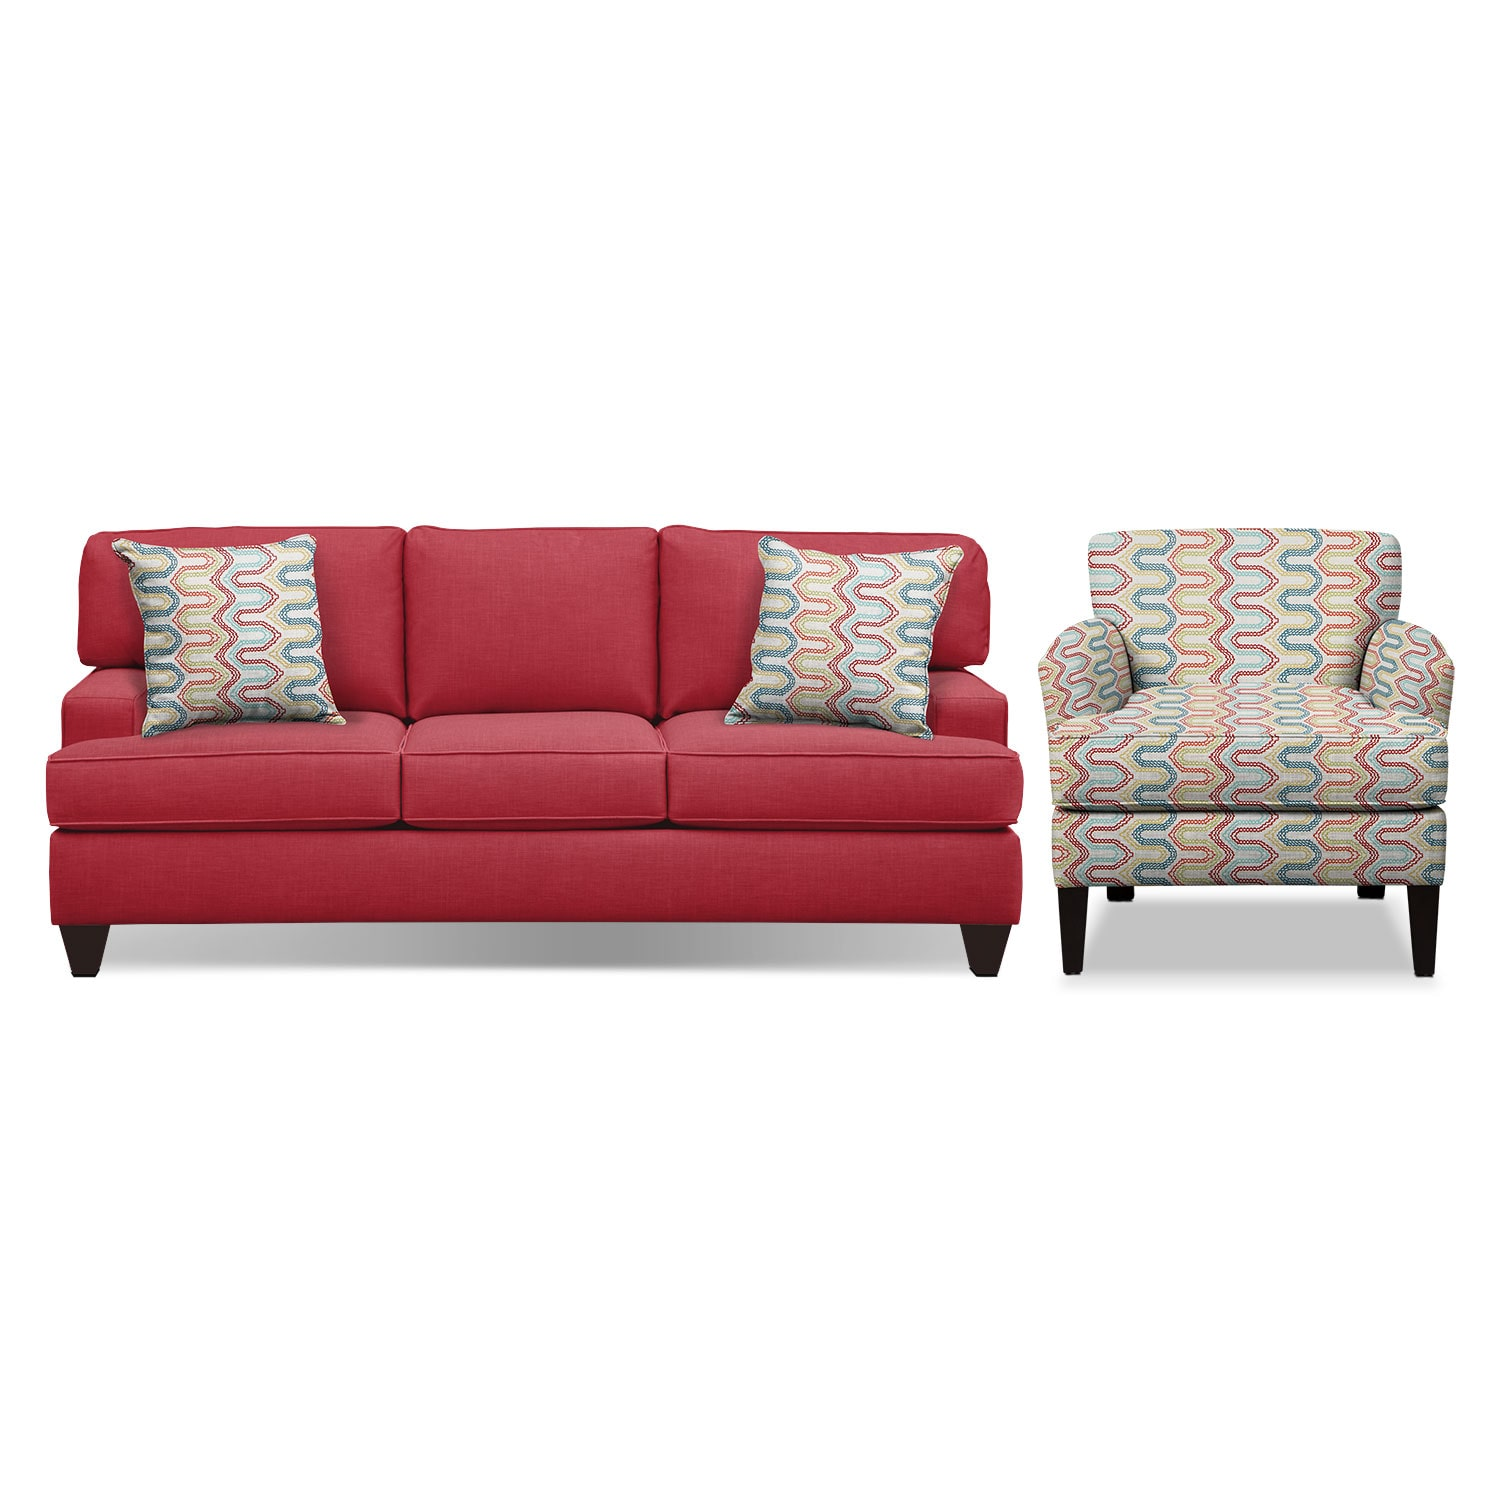 "Living Room Furniture - Conner Red 87"" Innerspring Sleeper Sofa and Accent Chair Set"